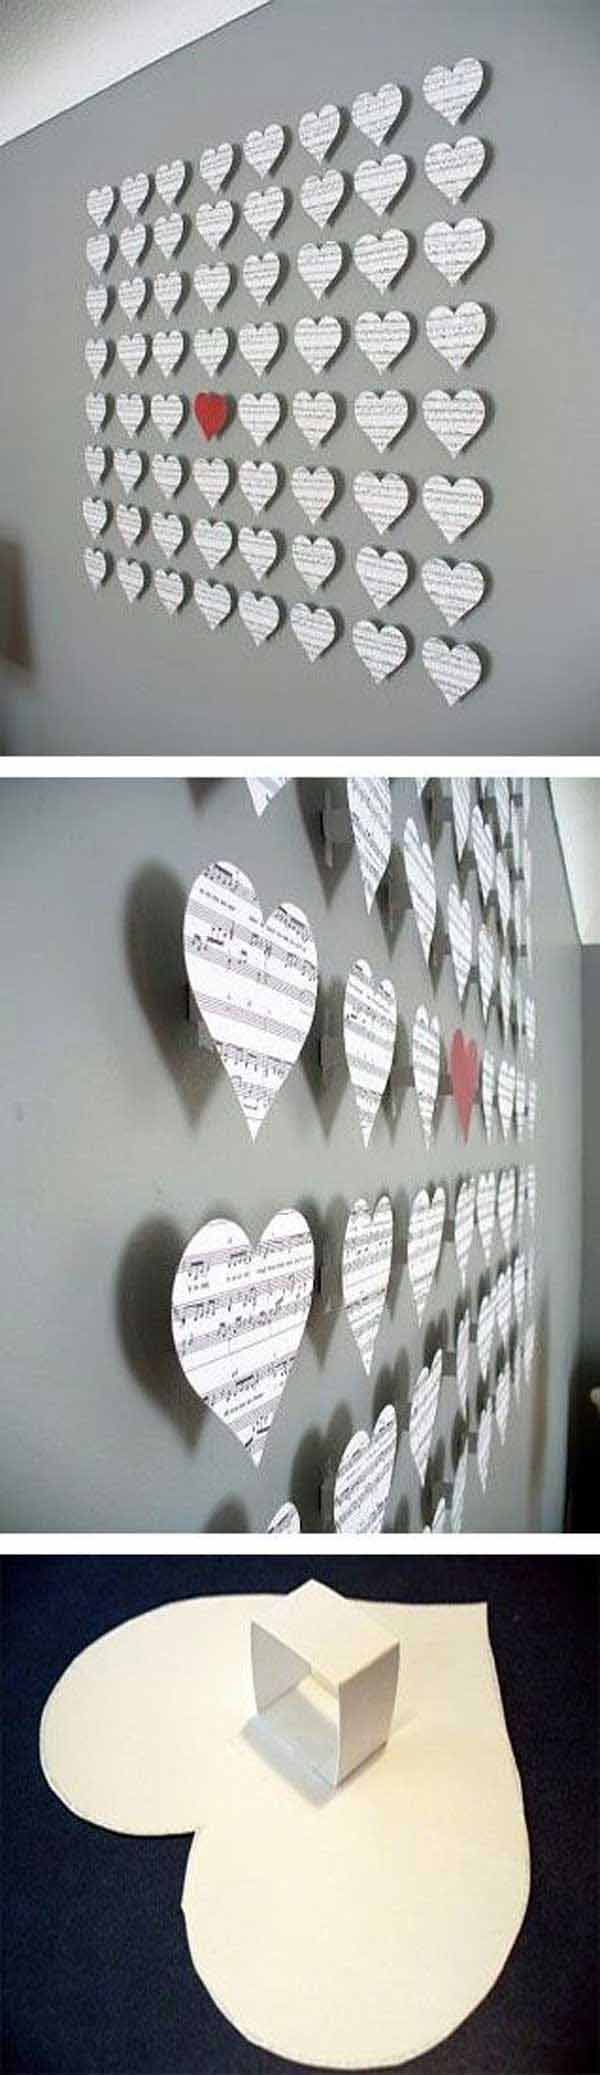 Wall Decor Diy best 20+ diy wall ideas on pinterest | cheap bedroom ideas, cheap